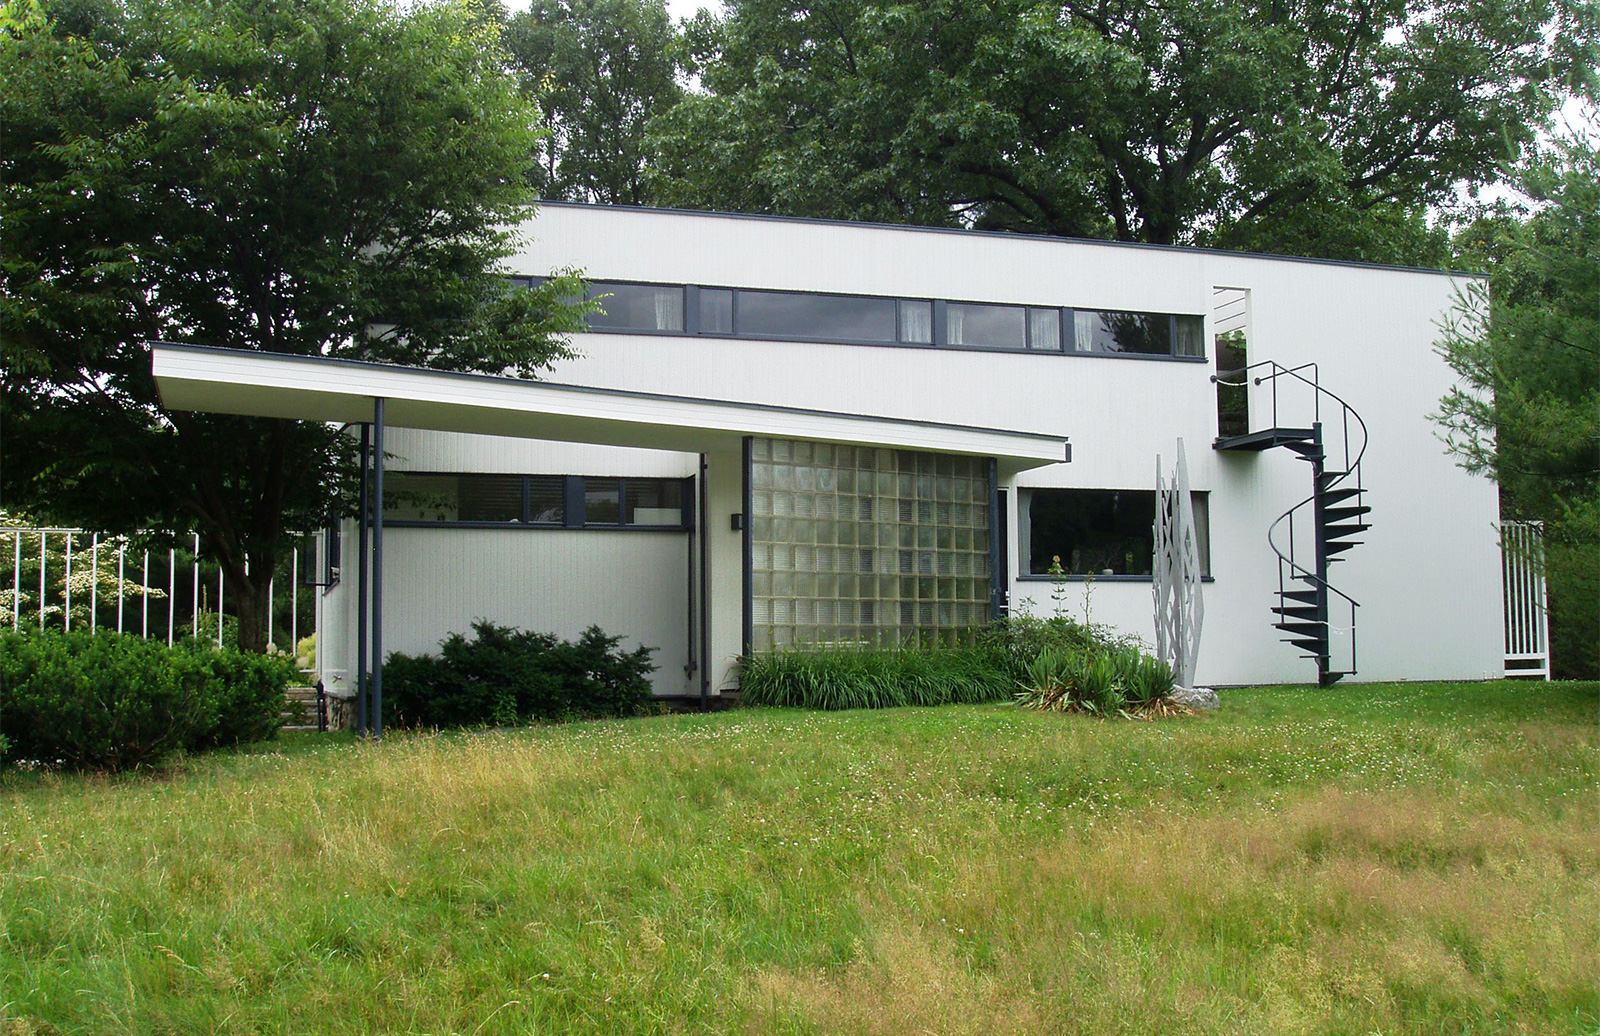 Gropius House in Lincoln, Massachusettes